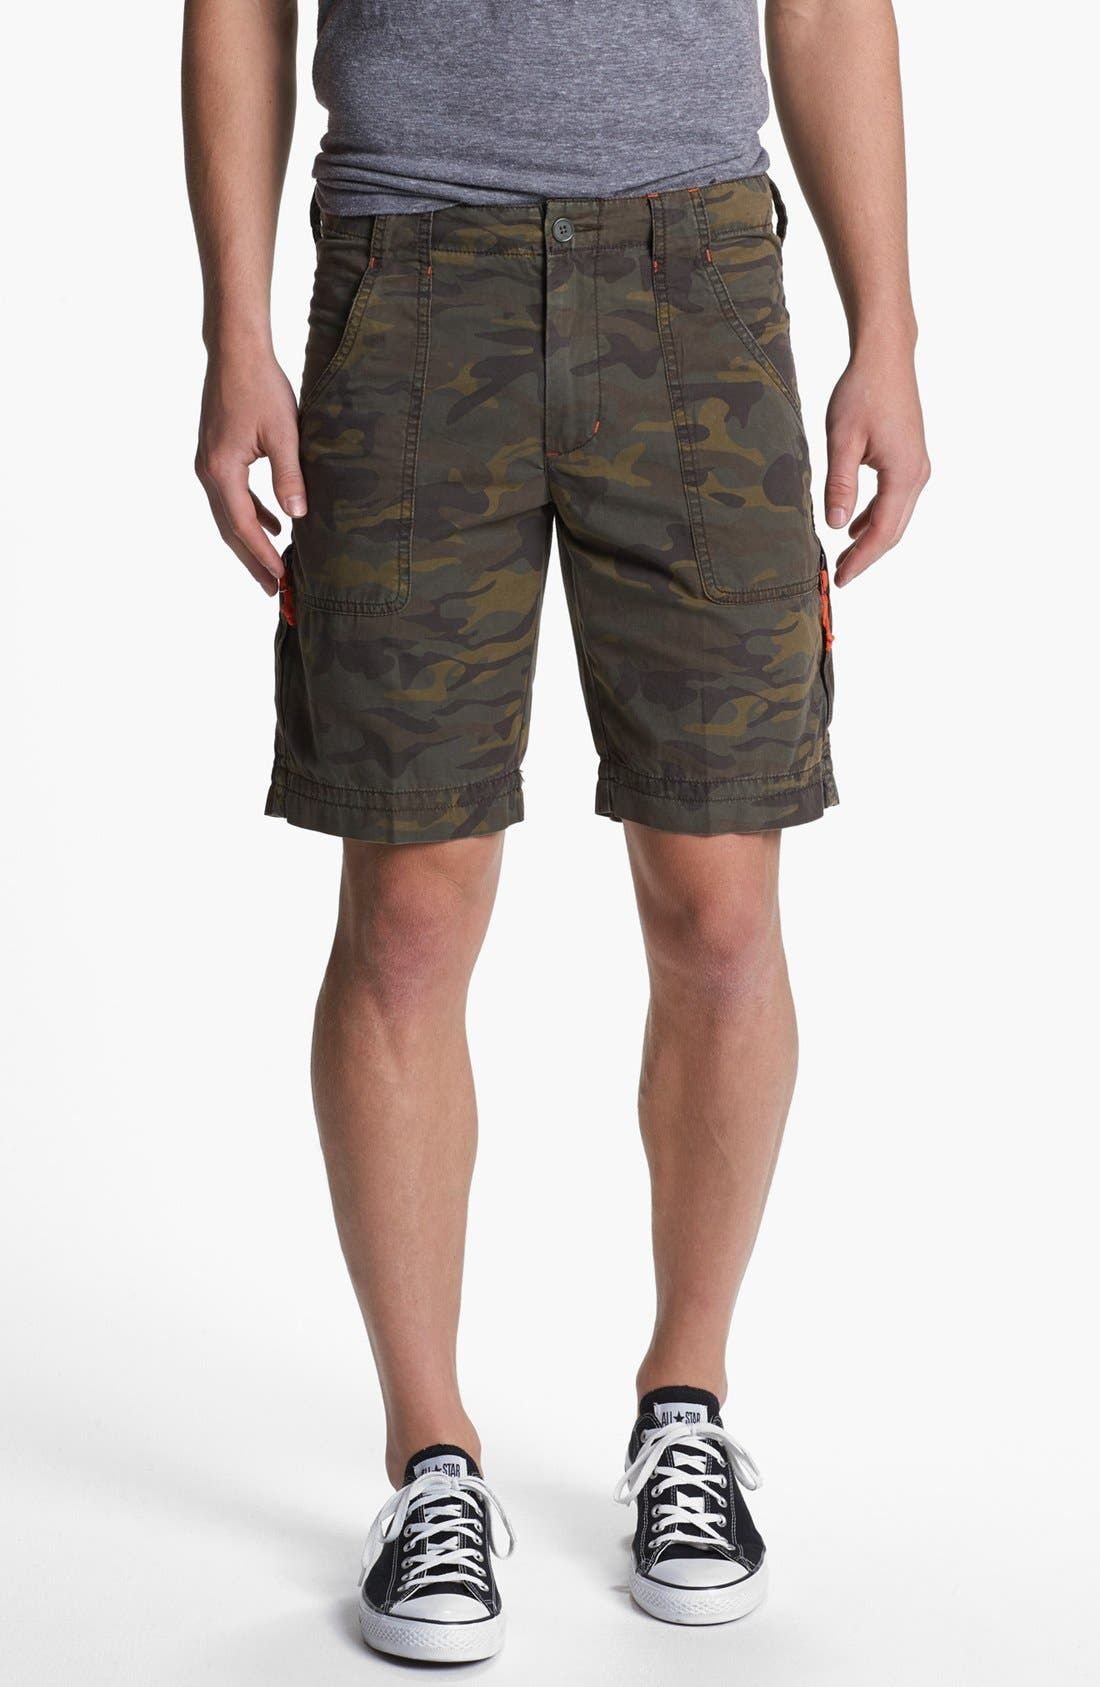 Alternate Image 1 Selected - Quiksilver 'Dust Buster' Camo Print Cargo Shorts